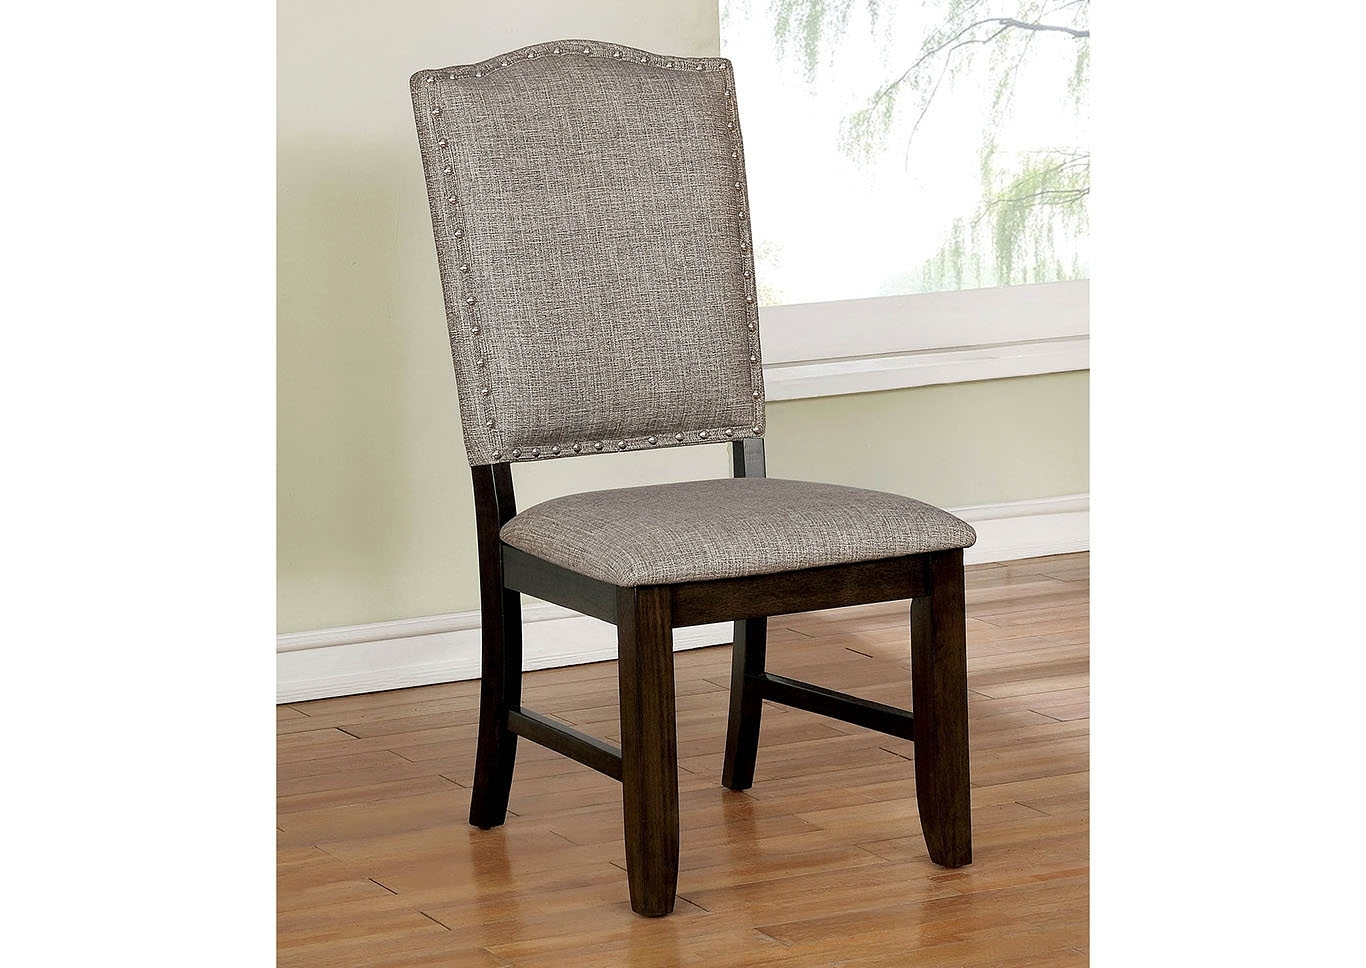 Inspiration about Trendy Moreno Valley Furniture Teagan Side Chair (2/ctn) With Regard To Teagan Side Chairs (#1 of 20)